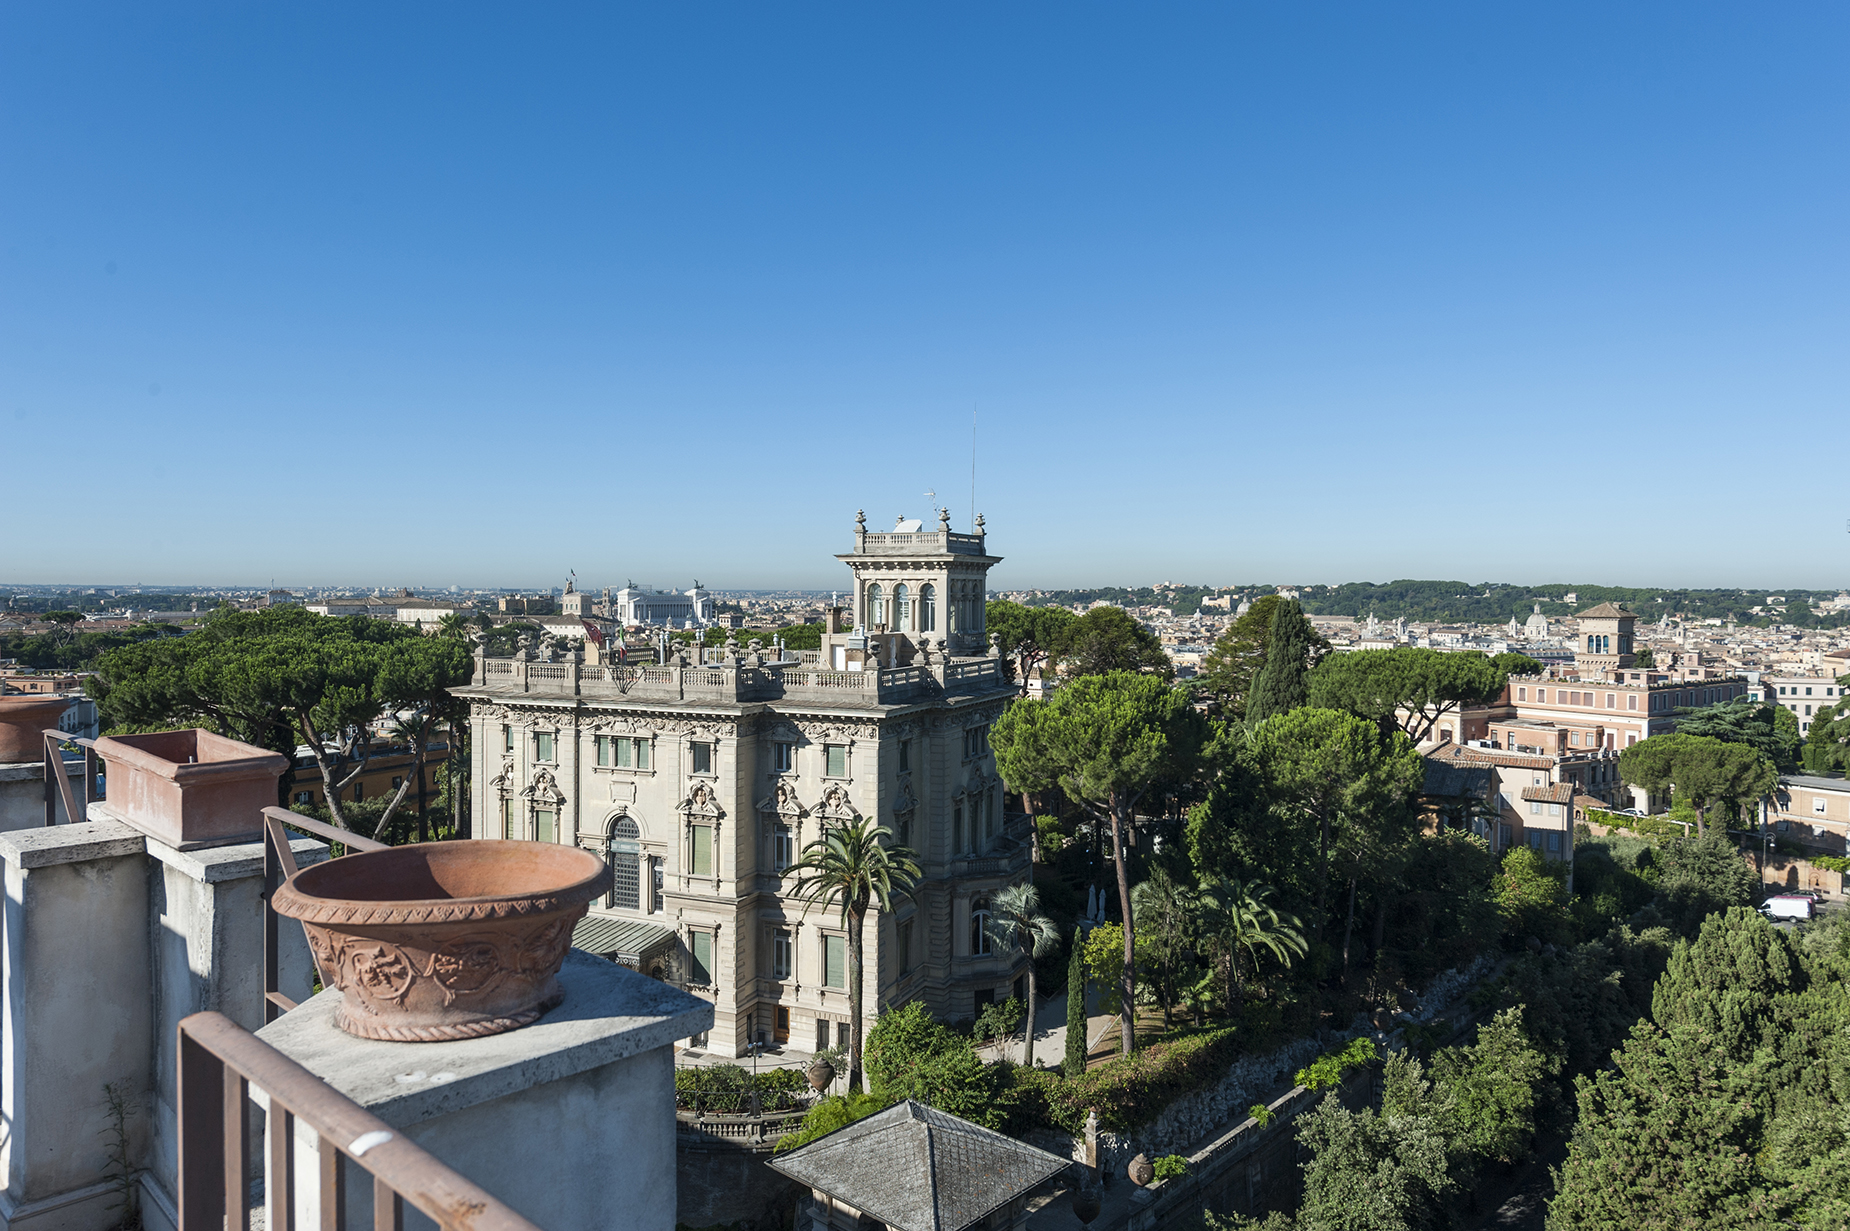 Căn hộ vì Bán tại Stunning penthouse with 360 ° view of the eternal city Rome, Rome, Ý